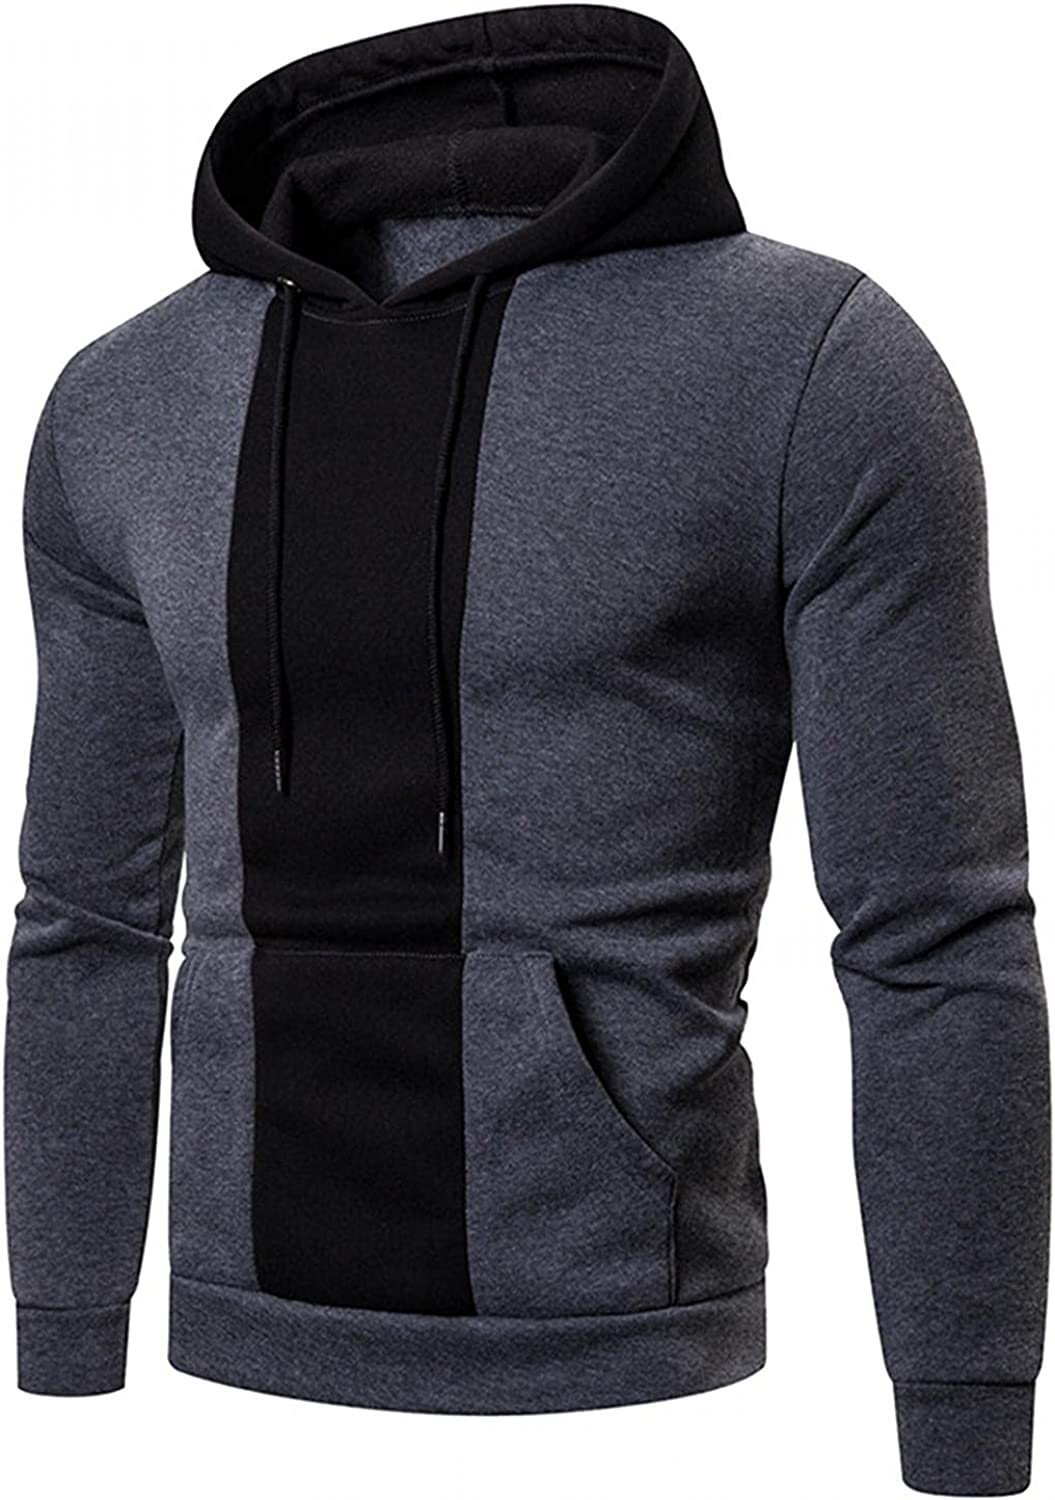 Hoodies Men Pullover Camouflage Sweatshirt Casual Comfy Loose Long Sleeve Workout Sports Sweater Hoodies for Boys